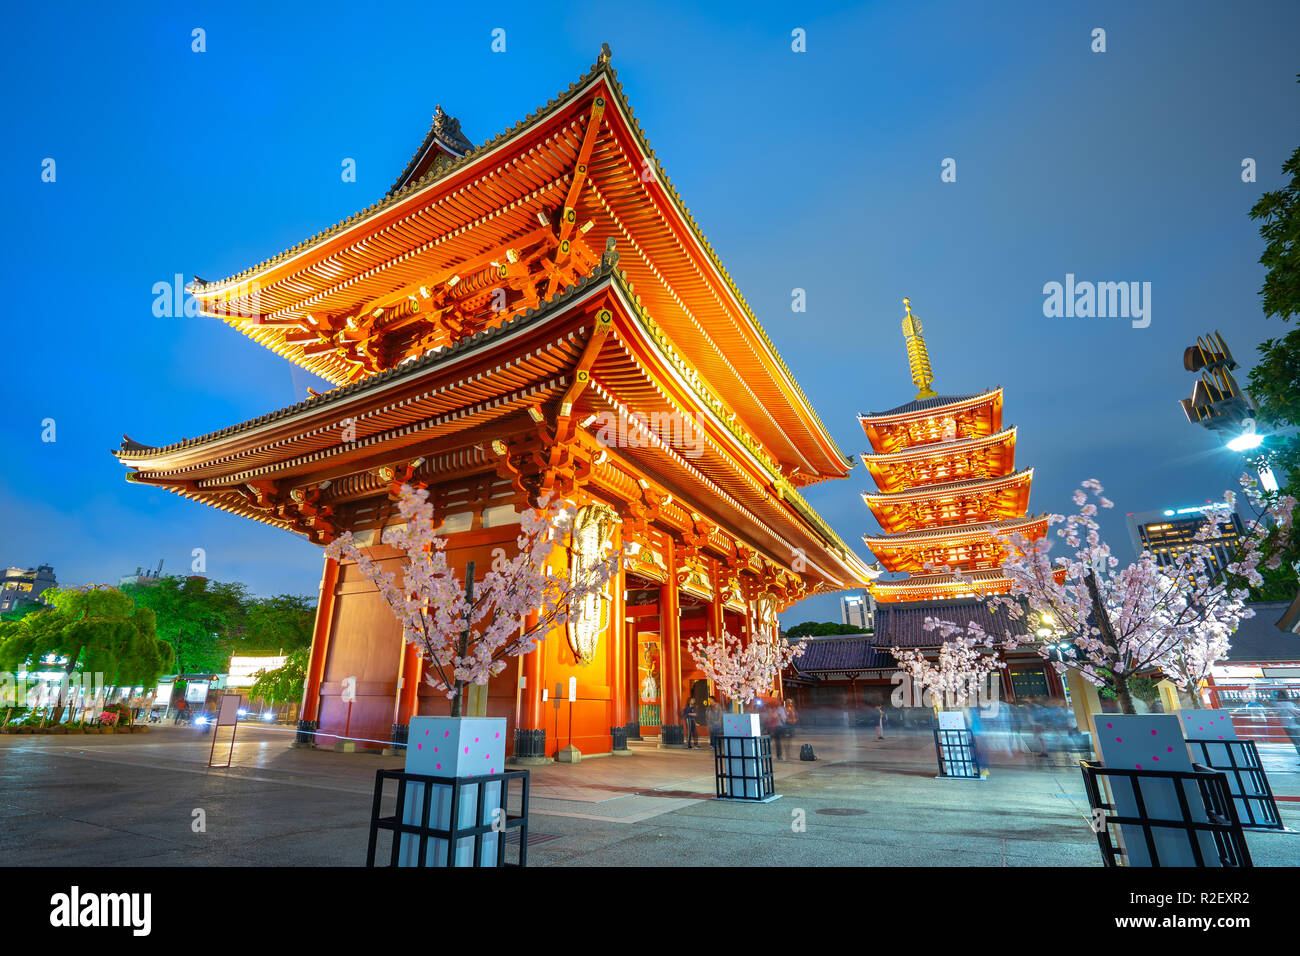 Sensoji Temple at night in Asakusa - Tokyo, Japan. - Stock Image